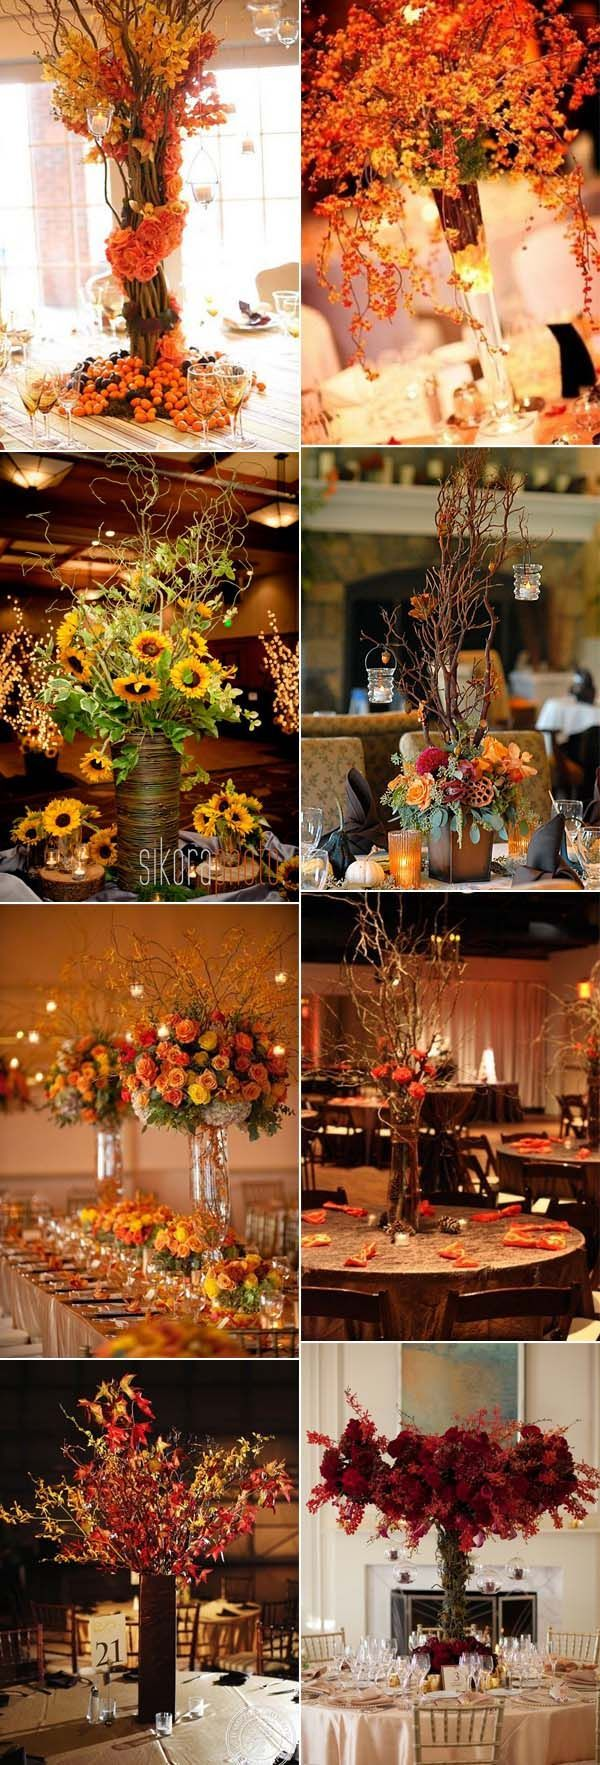 4127 best wedding centerpieces table decor images on pinterest 46 inspirational fall autumn wedding centerpieces ideas junglespirit Choice Image